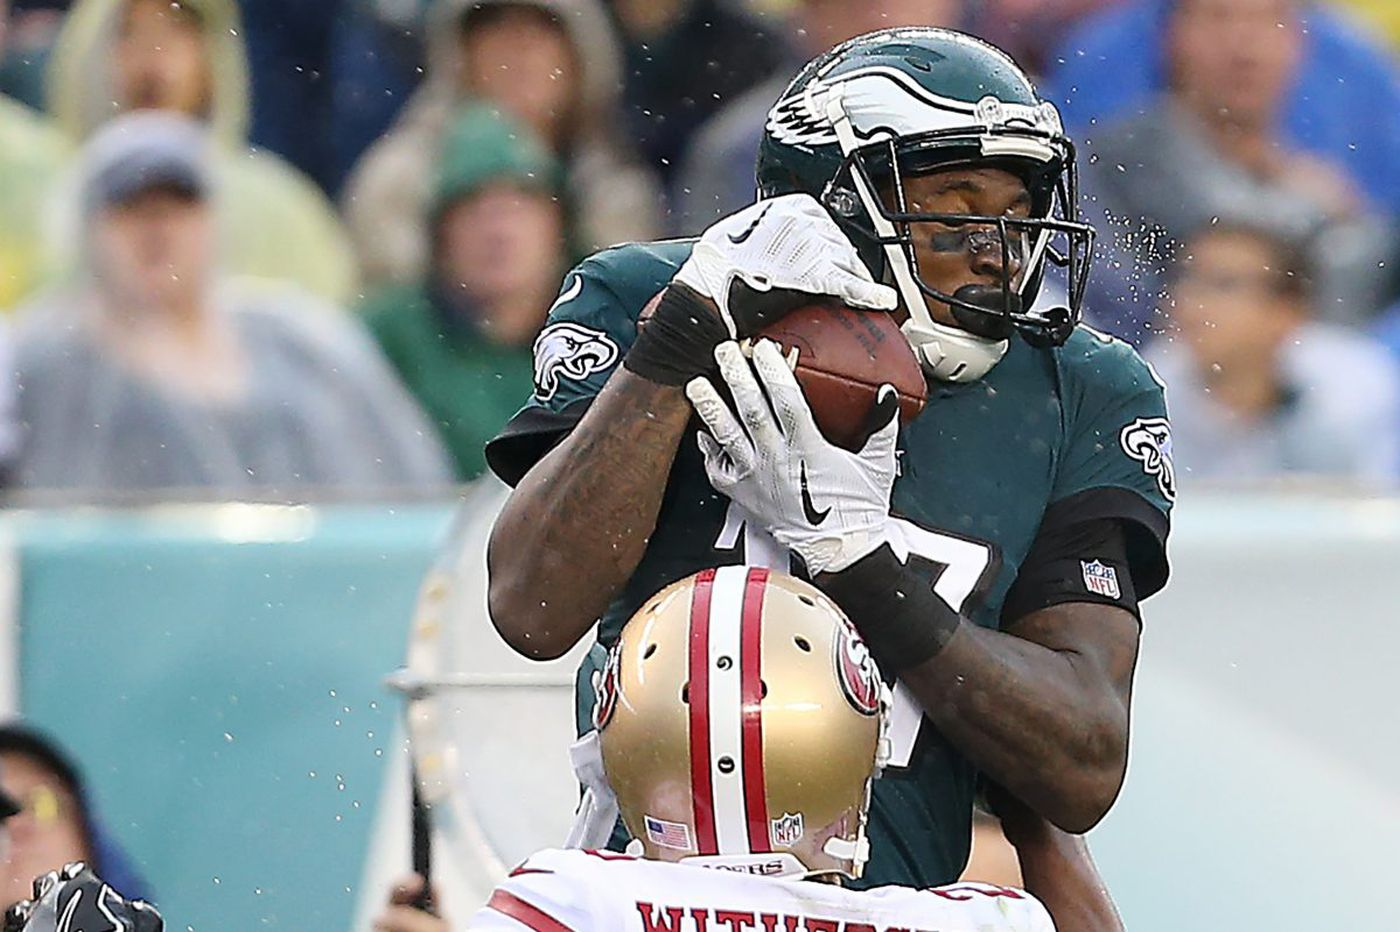 Can Alshon Jeffery's best game come against his former team? | Early Birds